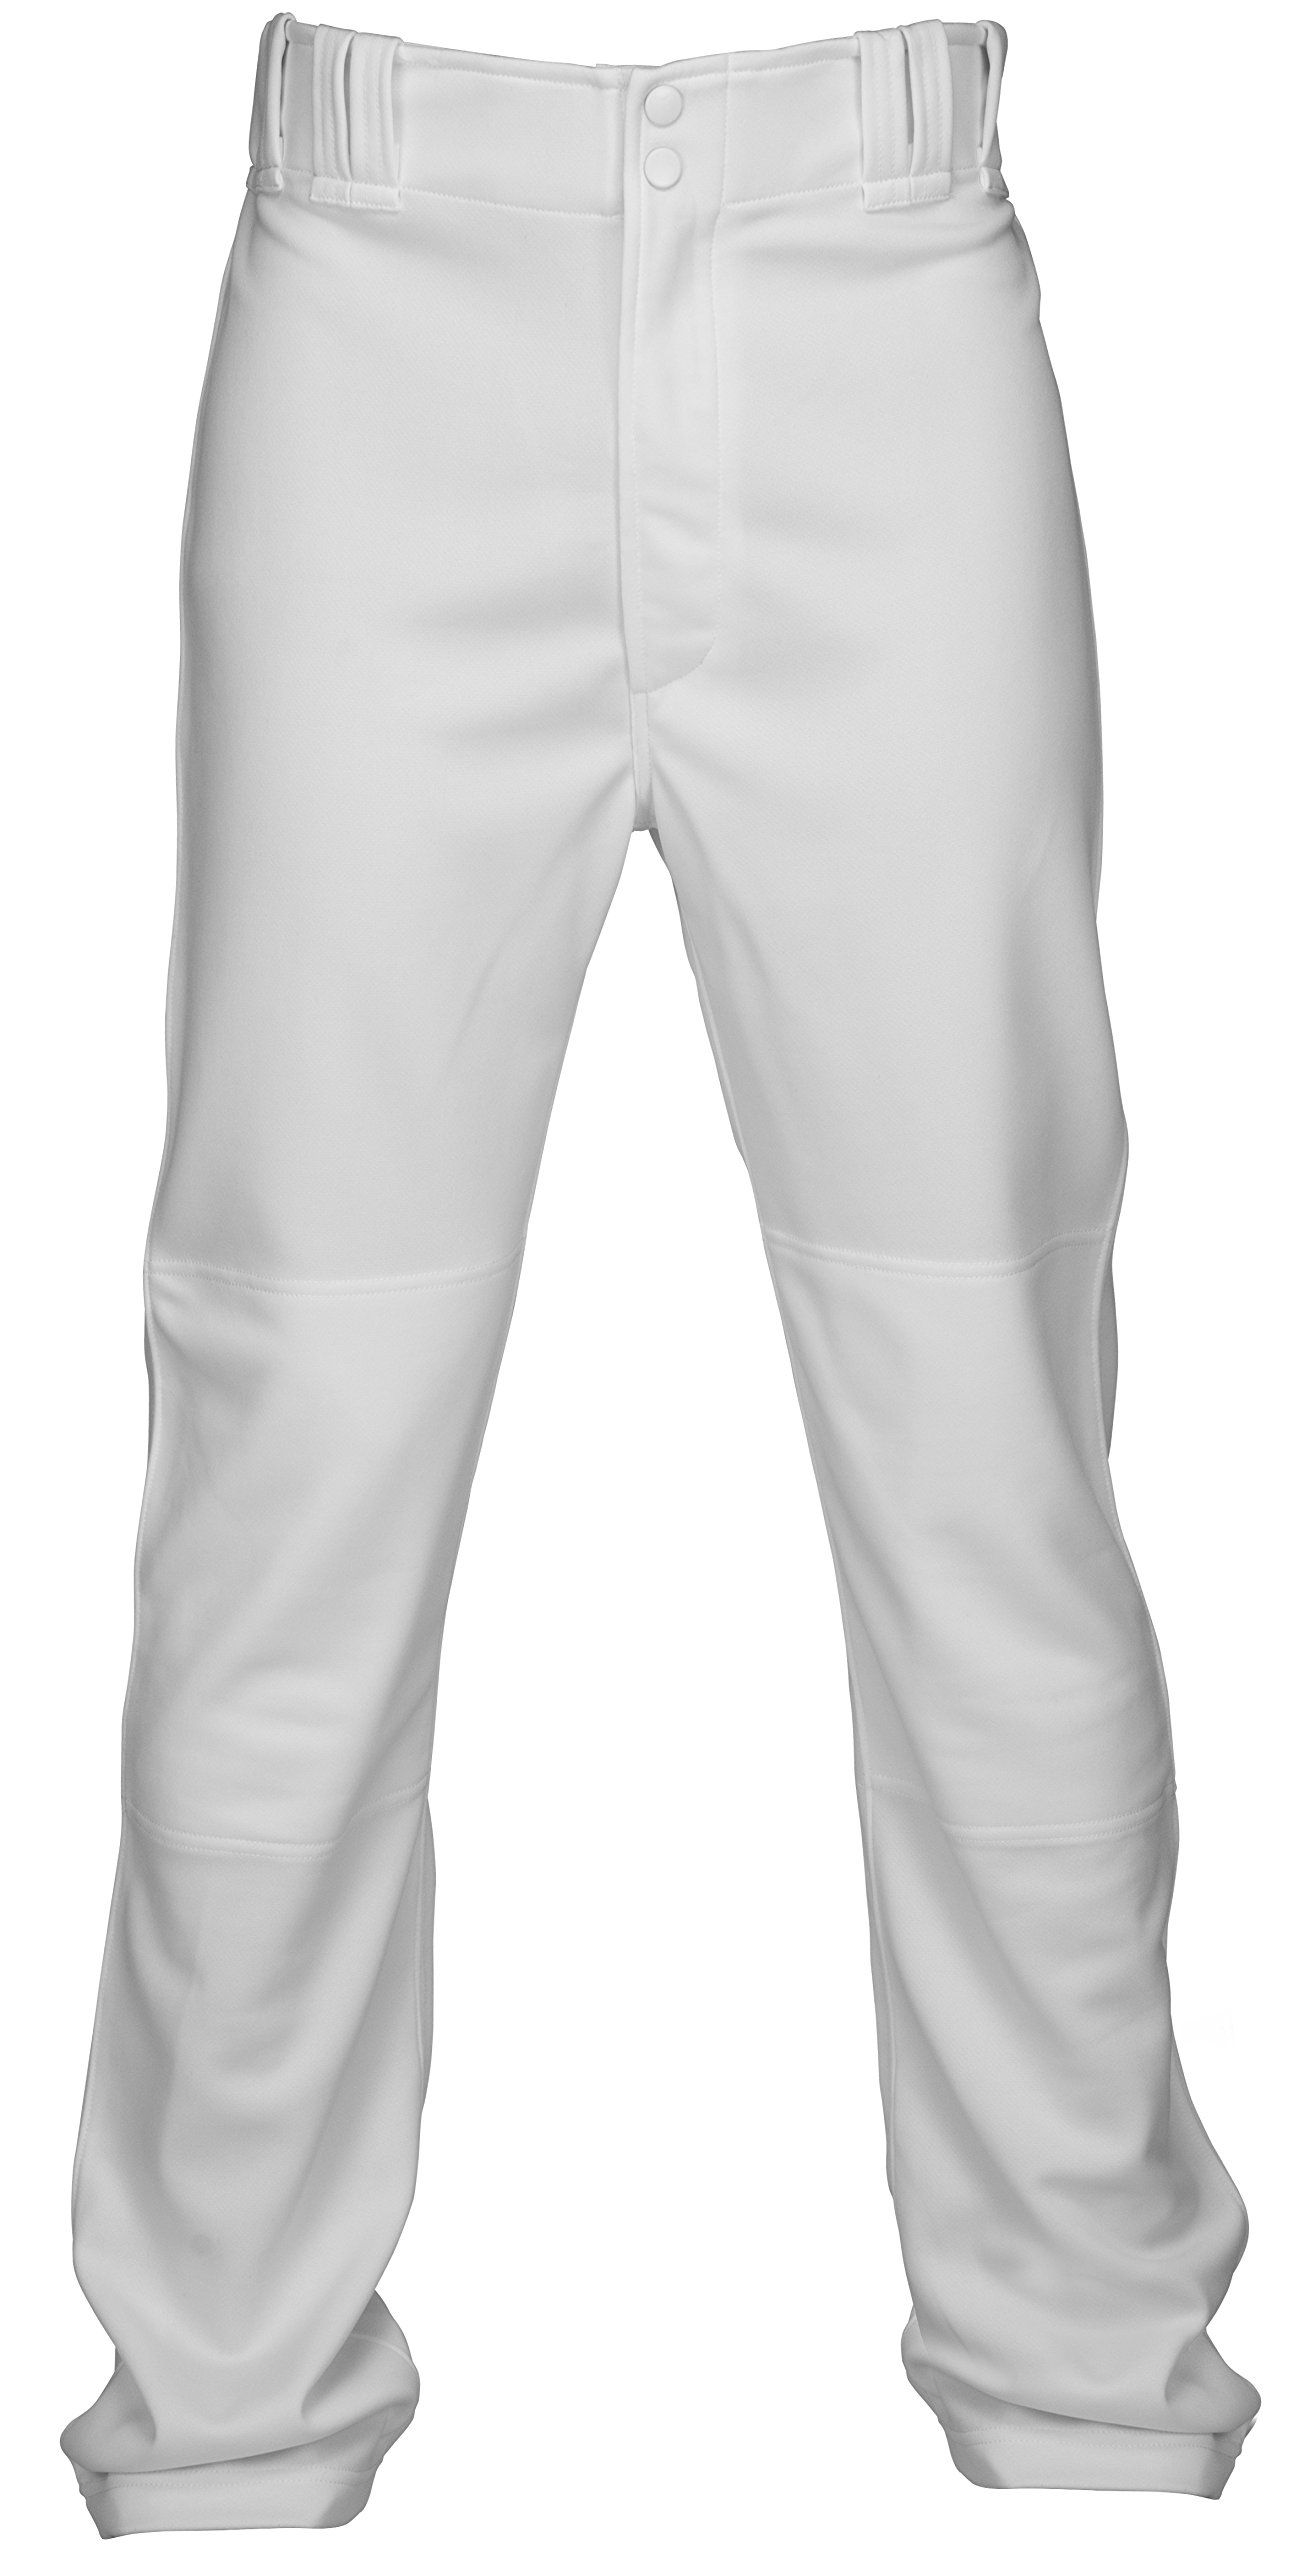 Marucci Youth Elite Double Knit Baseball Pant, White, Large by Marucci